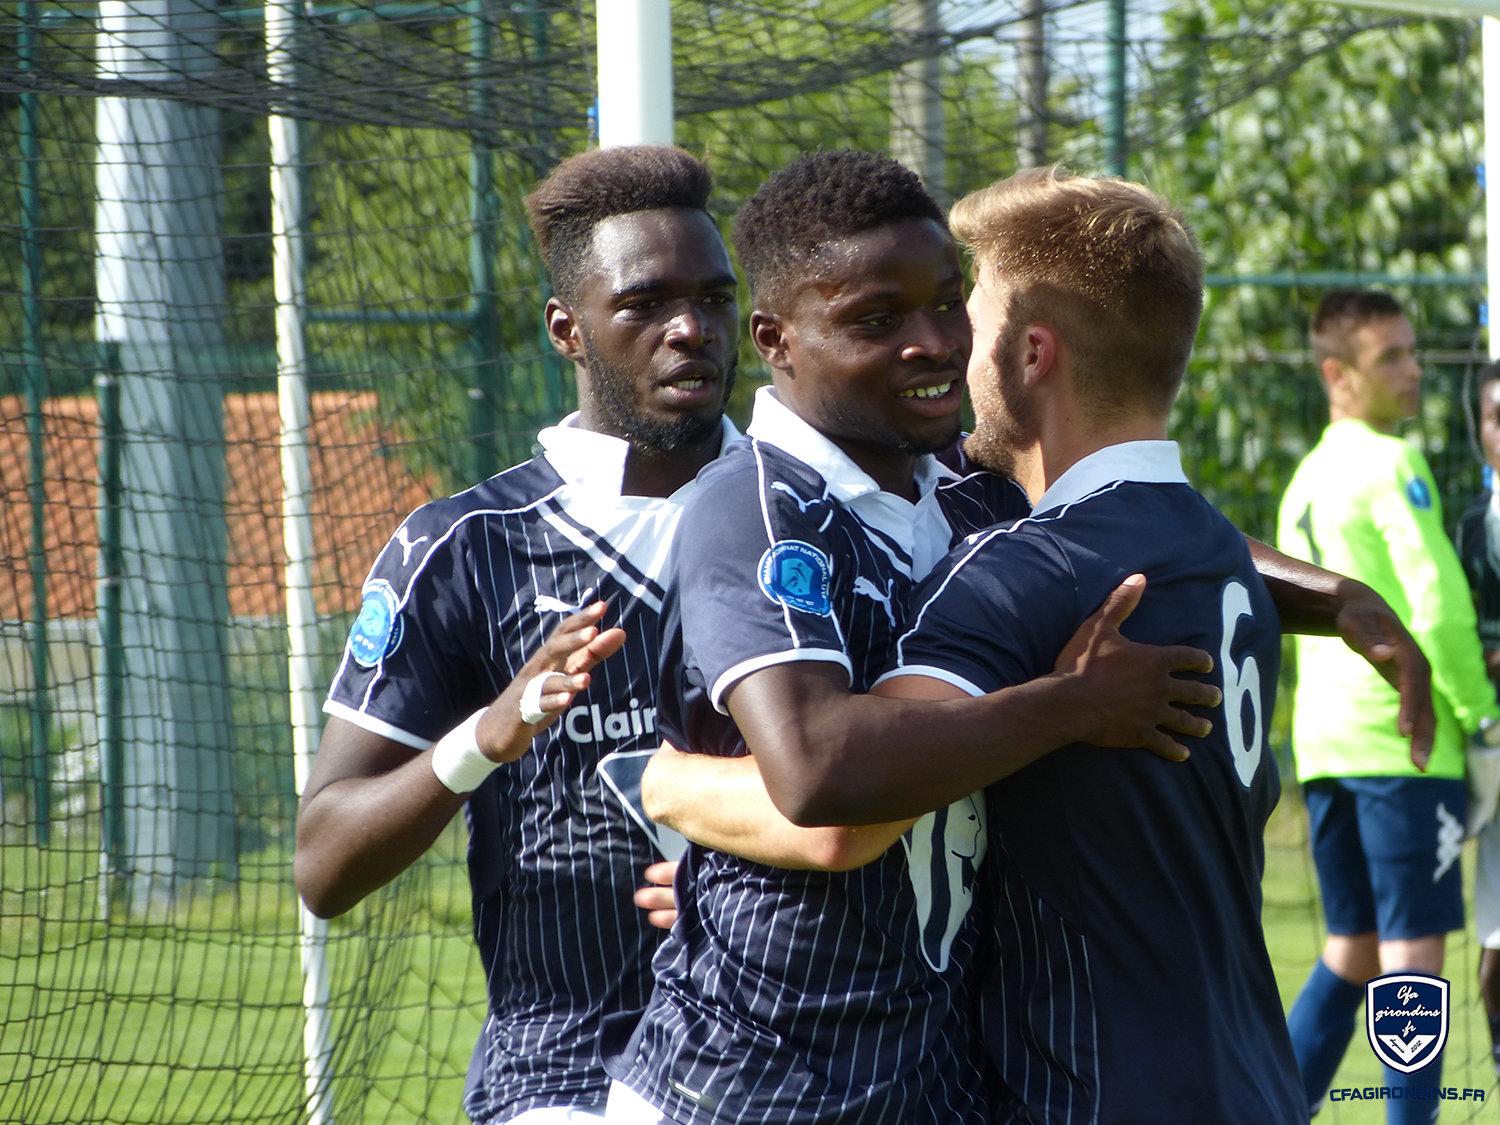 Cfa Girondins : Une belle victoire pour commencer - Formation Girondins